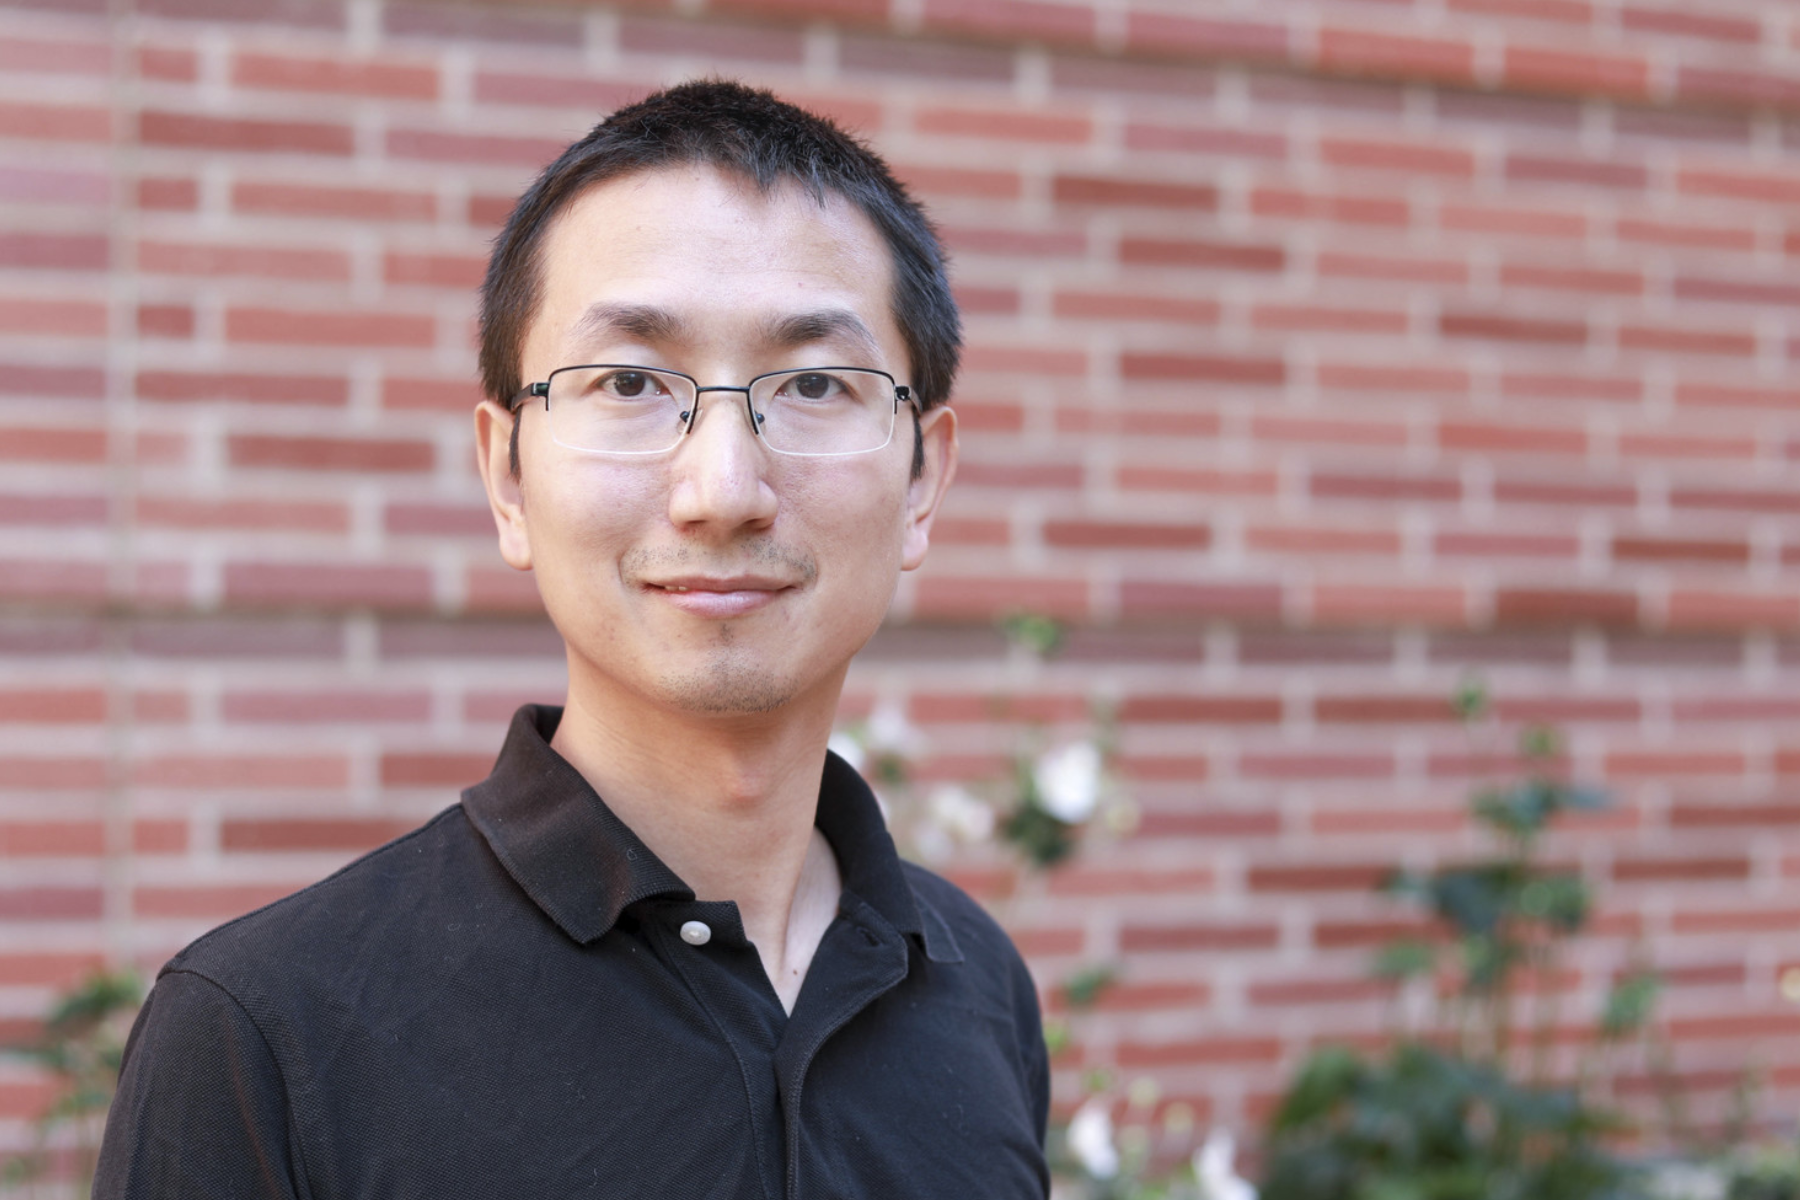 CS 201: Epidemic Model Guided Machine Learning for COVID-19 Forecasts, QUANQUAN GU, UCLA – Computer Science